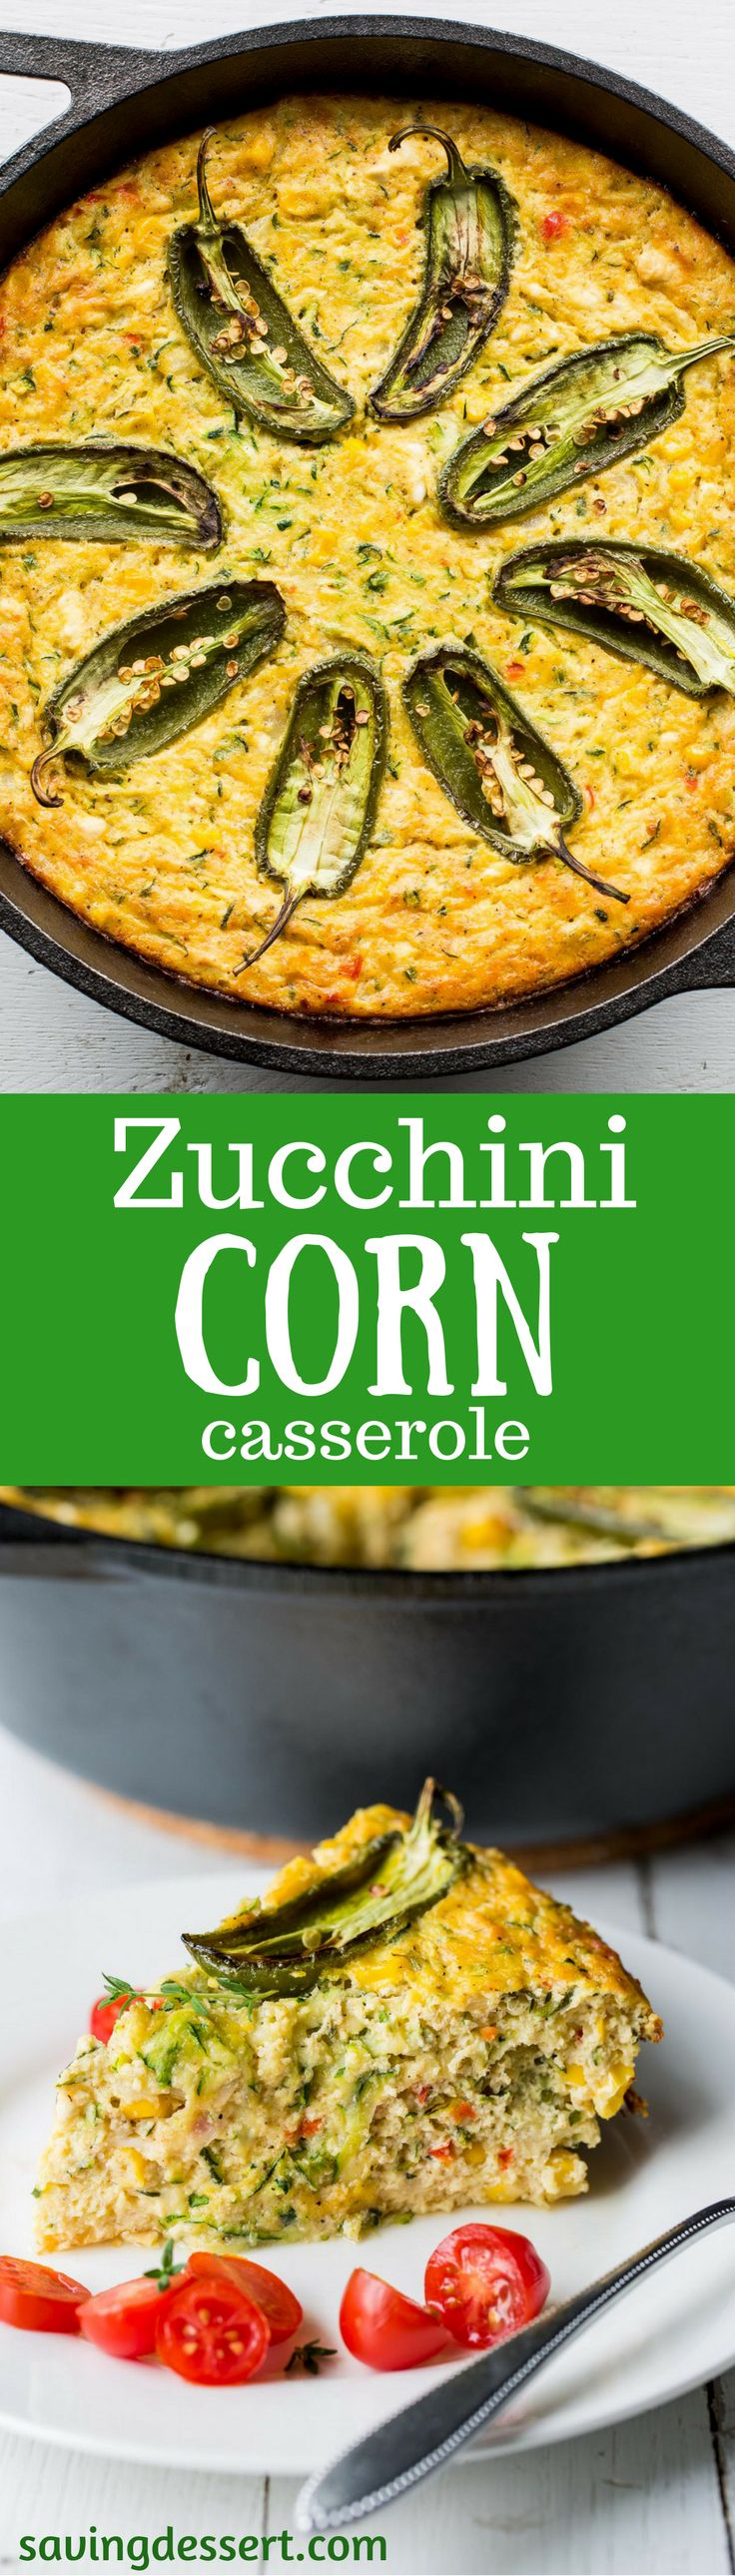 Corn & Zucchini Casserole ~ Summer vegetables are plentiful in this crustless quiche-like casserole. Delicious for breakfast, brunch or a meatless dinner everyone will love. www.savingdessert.com